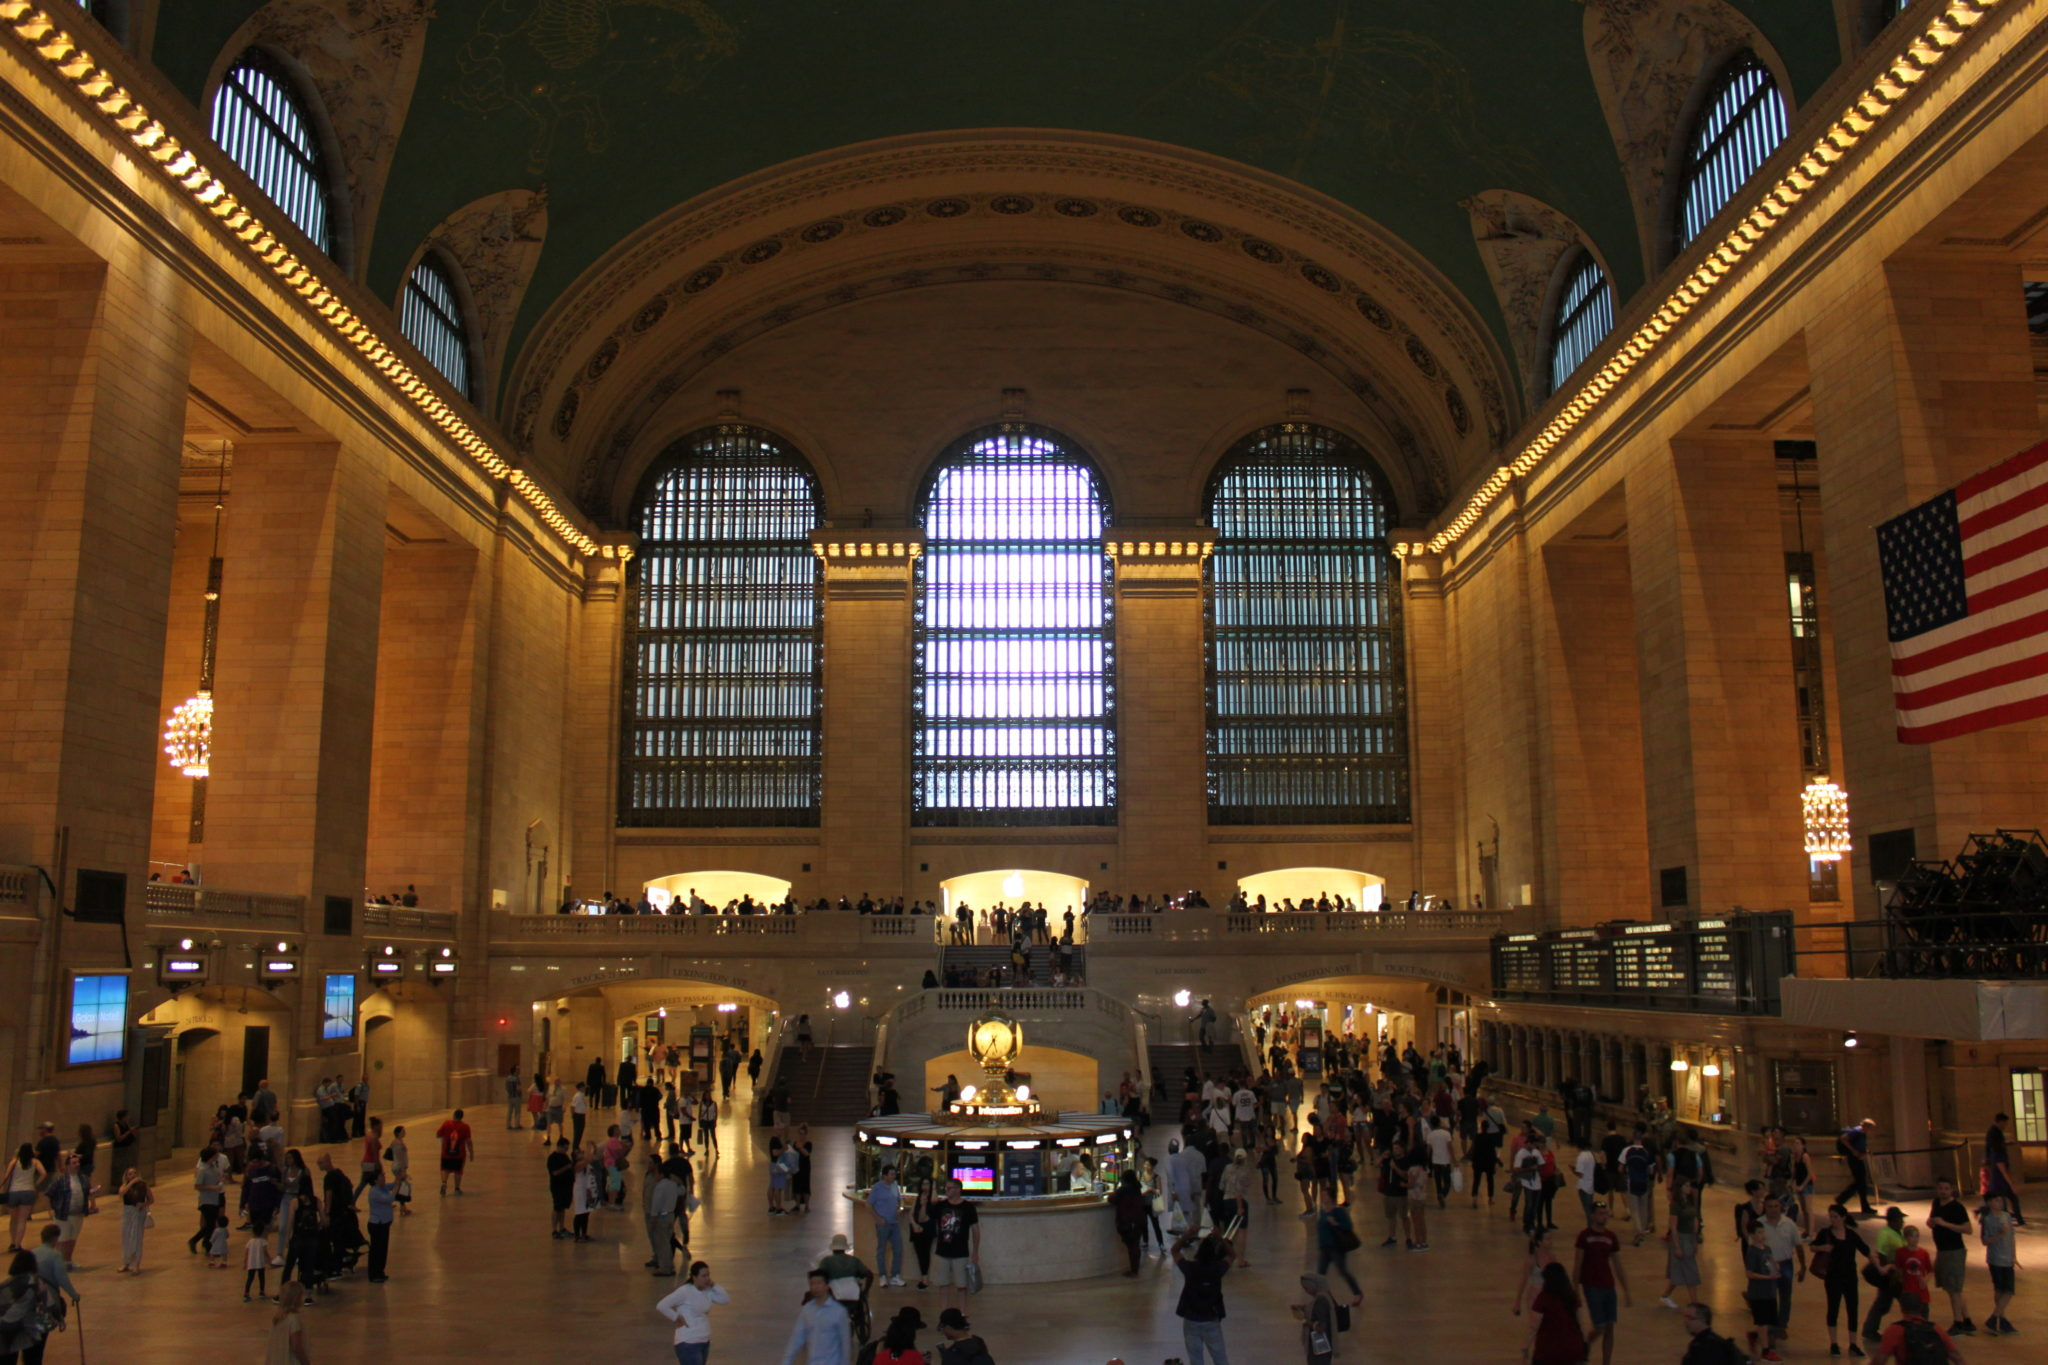 Visite grauite à New York, la gare de Grand Central